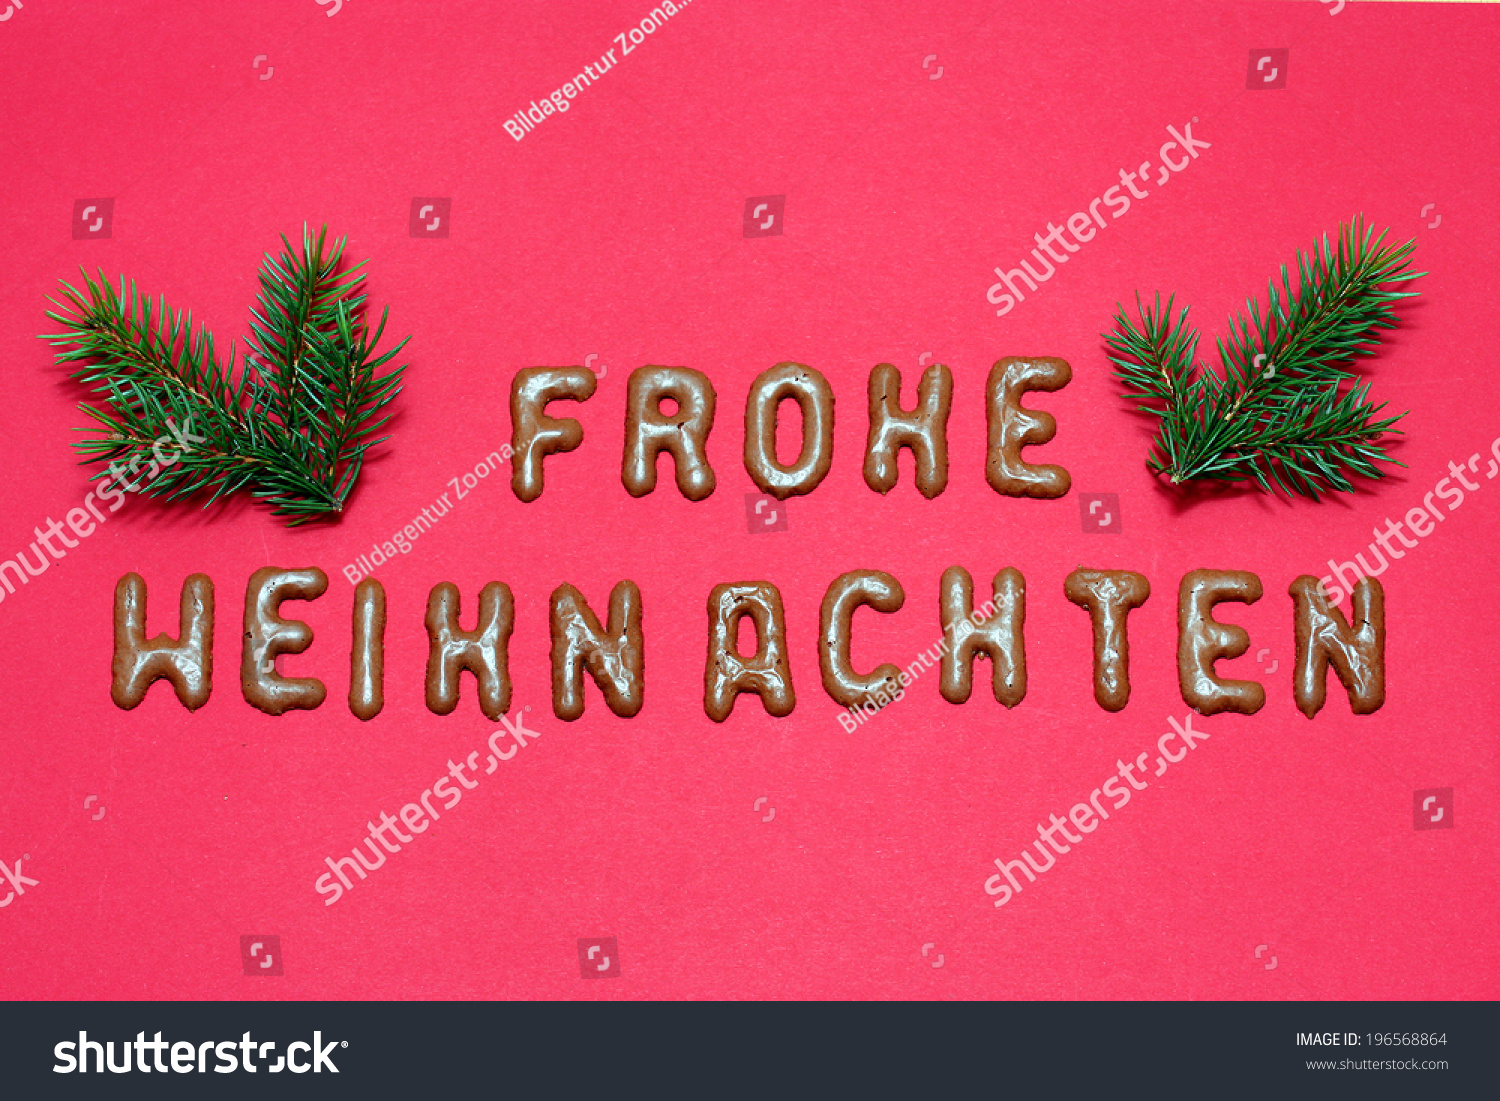 How Do You Say Merry Christmas In German.Merry Christmas German Language Stock Illustration 196568864